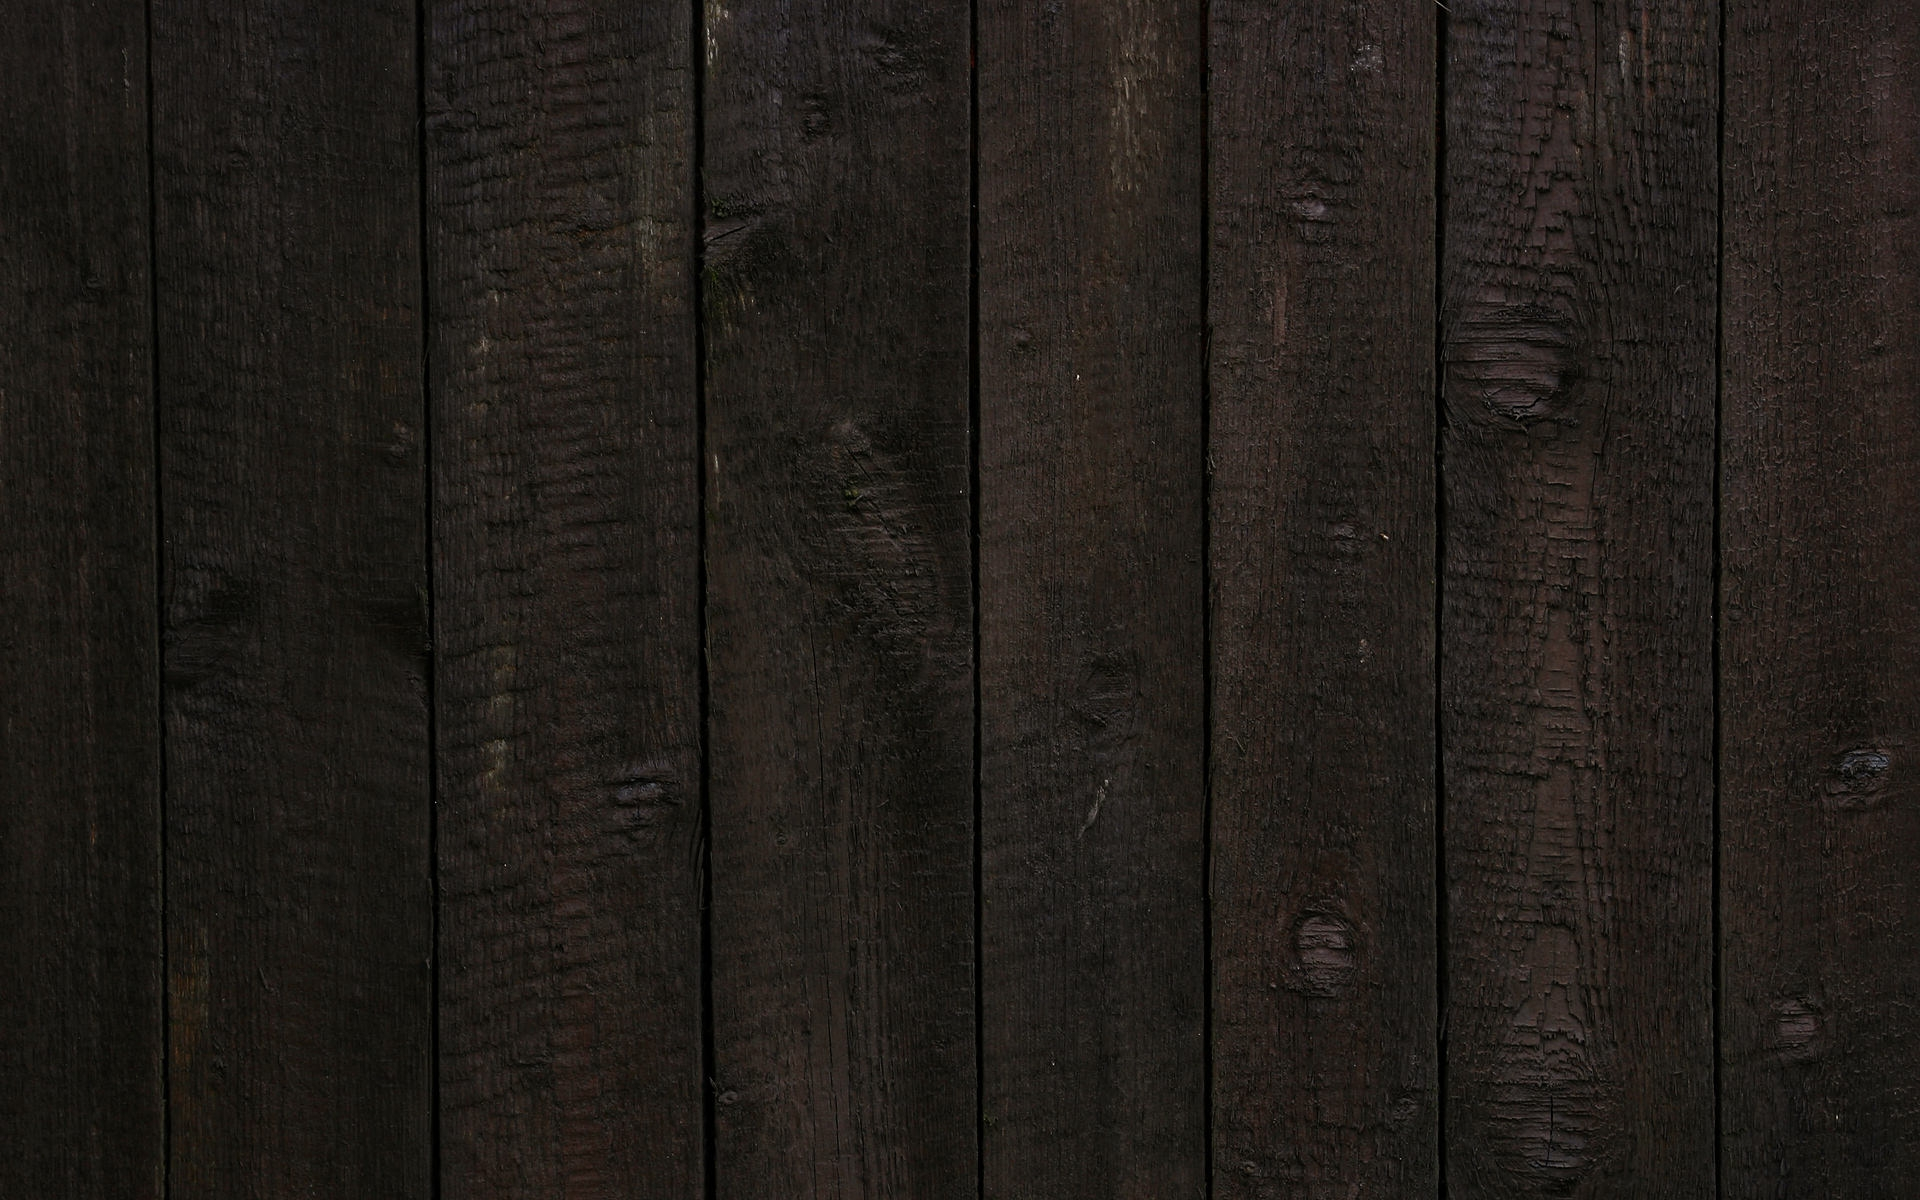 Plain Wooden BAckground For deskop